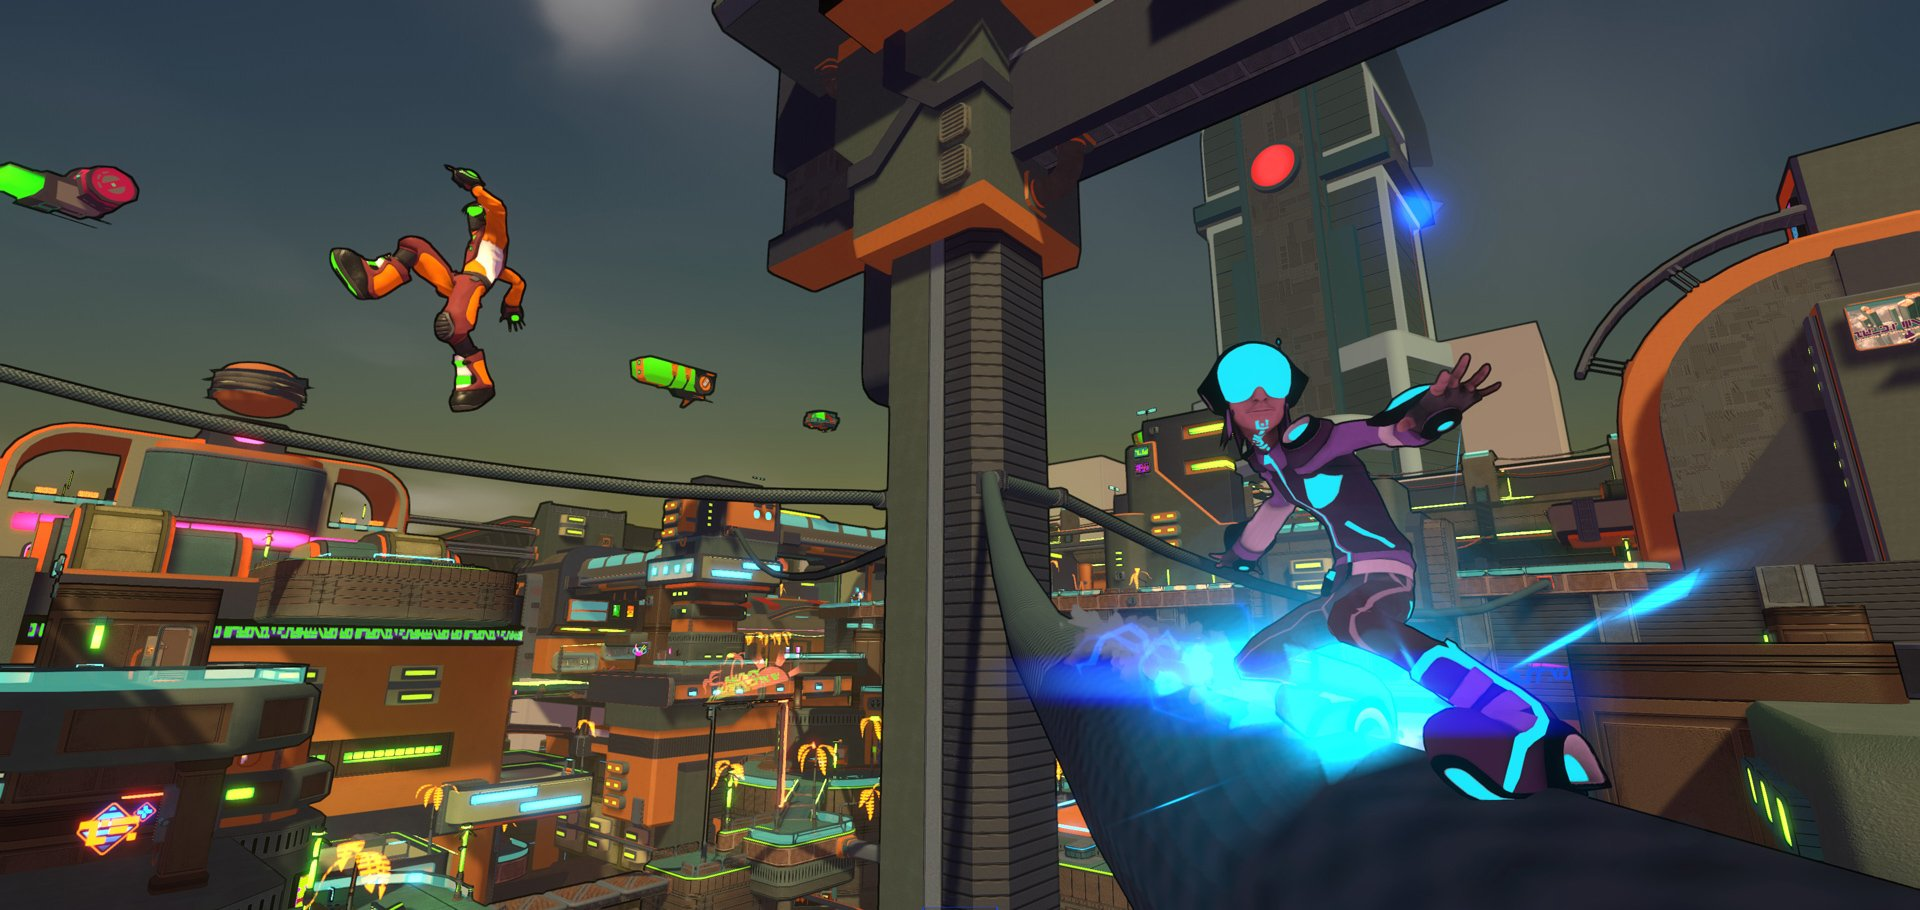 The composer of Jet Set Radio has new music for Hover screenshot